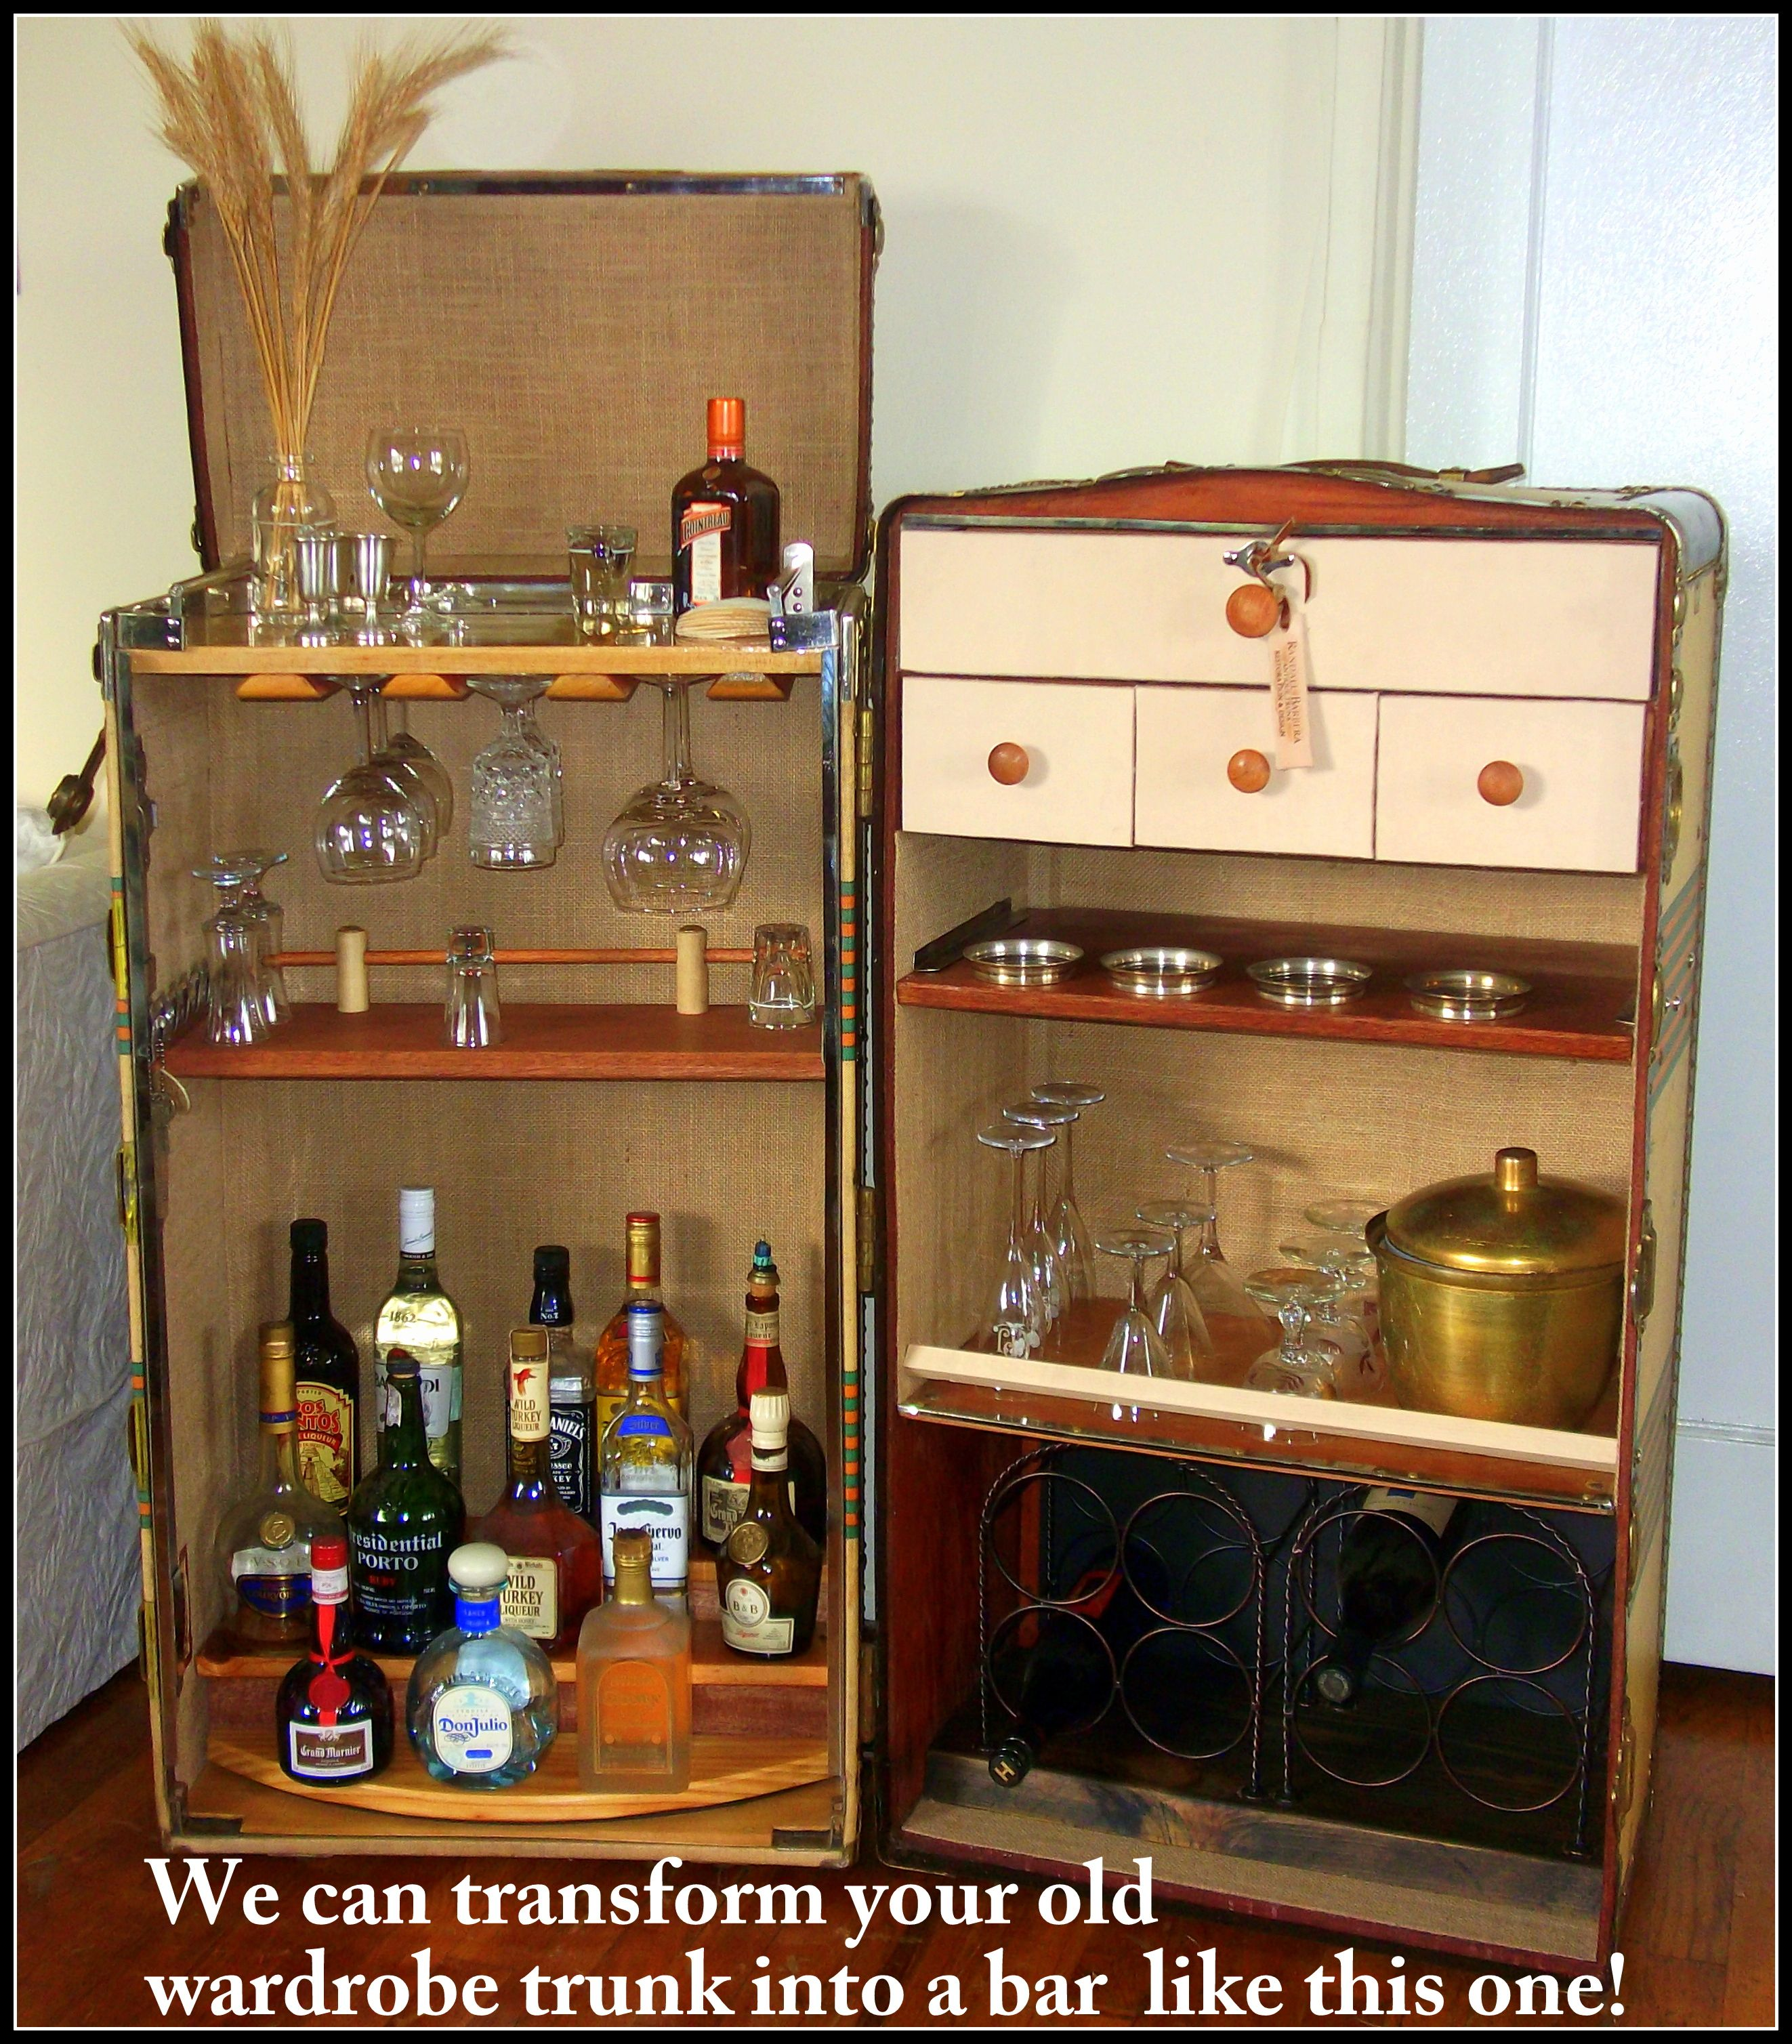 bar trunk furniture. a wardrobe trunk converted into bar for client furniture b